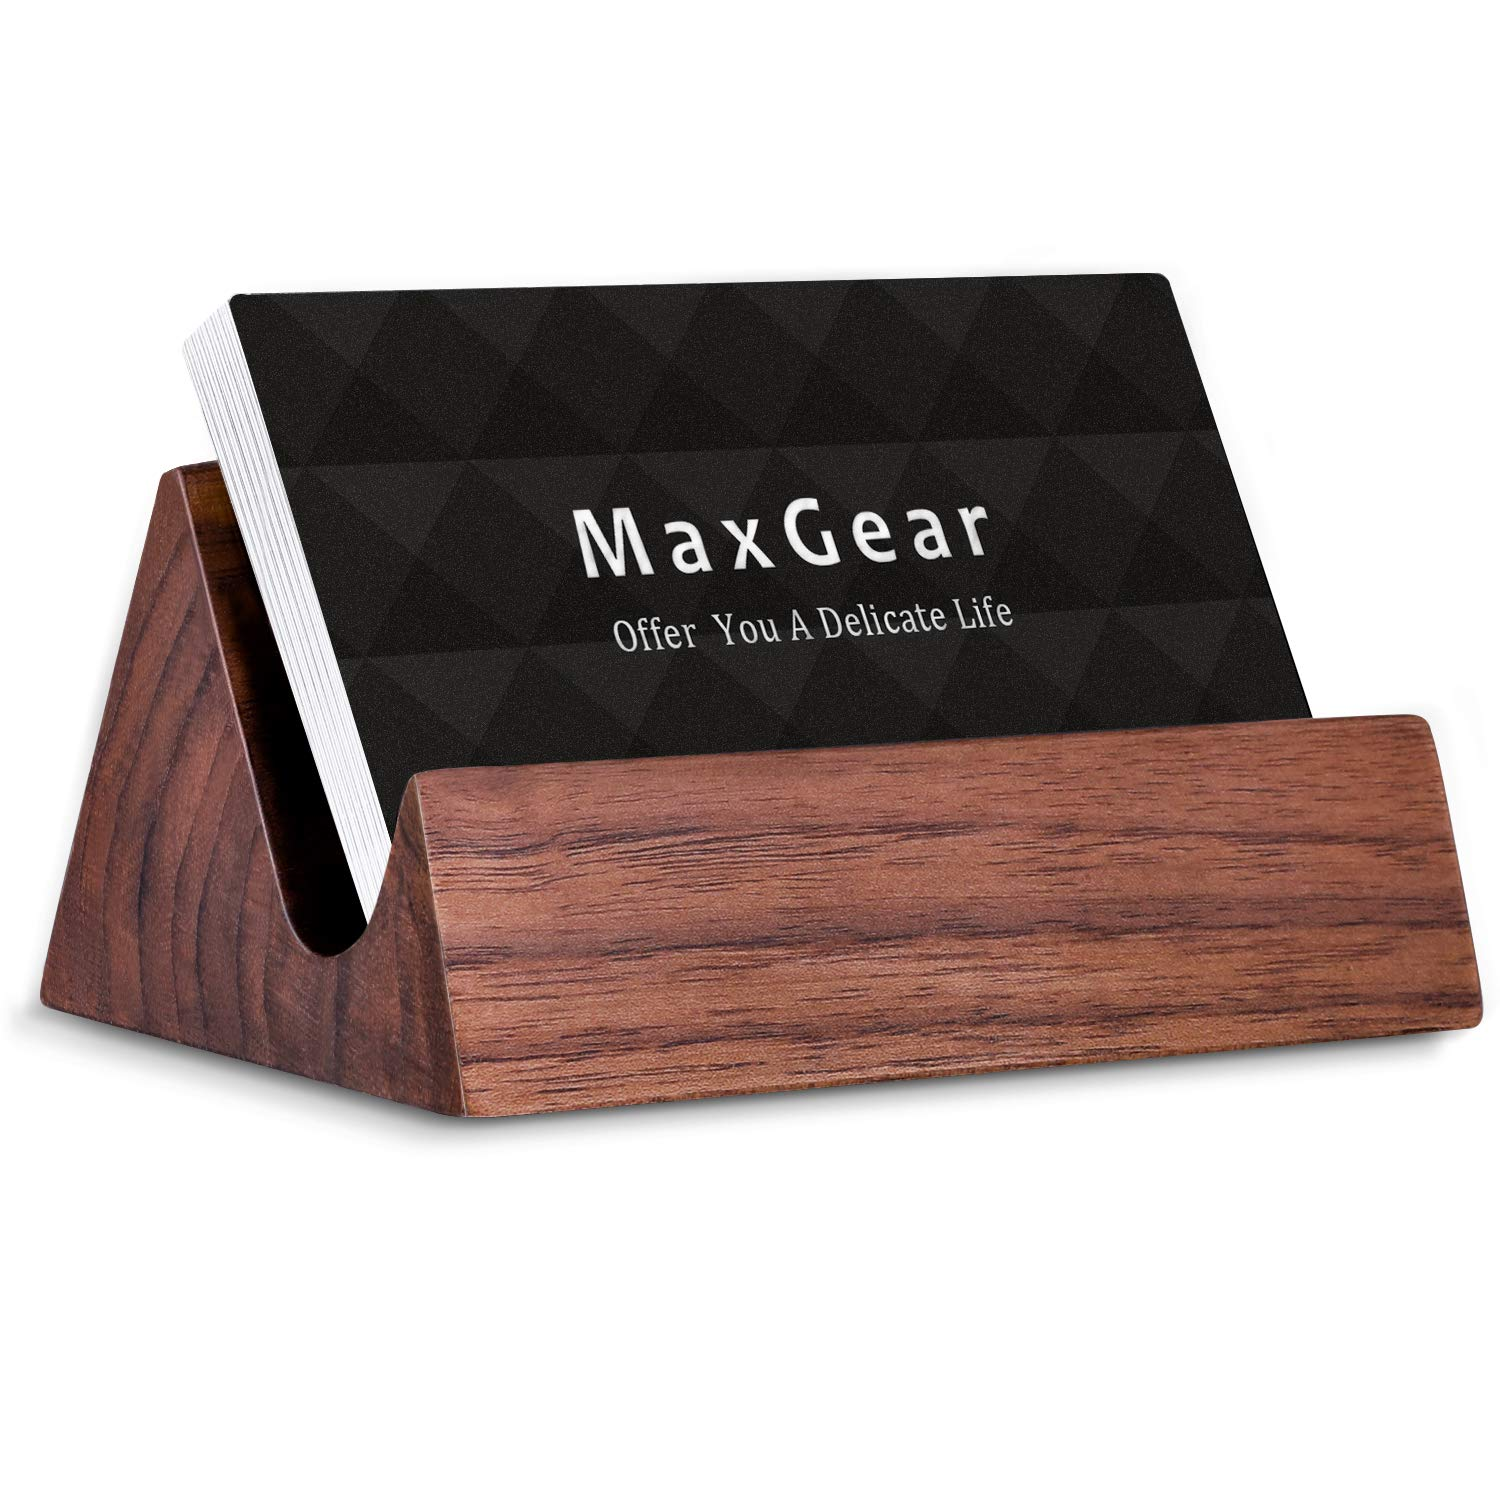 MaxGear Wood Business Card Holder Desk Business Card Holder Stand Wooden Business Card Display Holders for Desktop Business Cards Stand for Office and Home, Walnut,3.8x2.6x1.8 in, Mountain